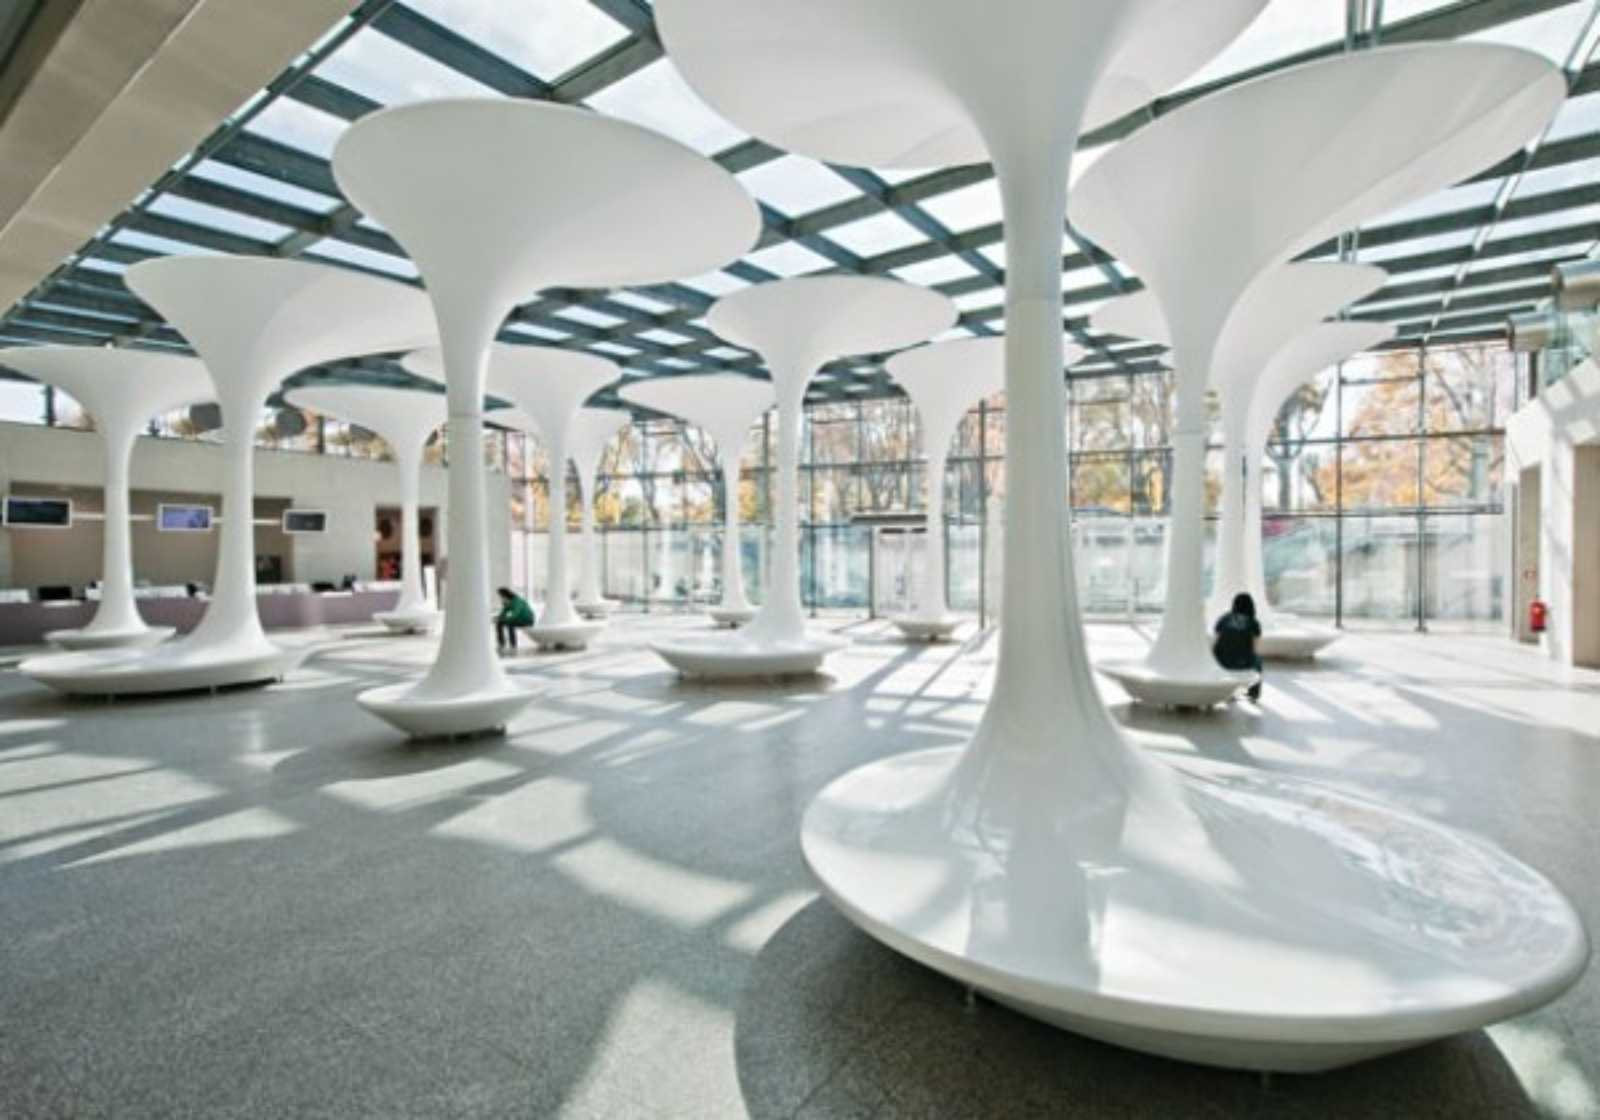 Foyer Architecture : Tmw technical museum entrance foyer by querkraft architects